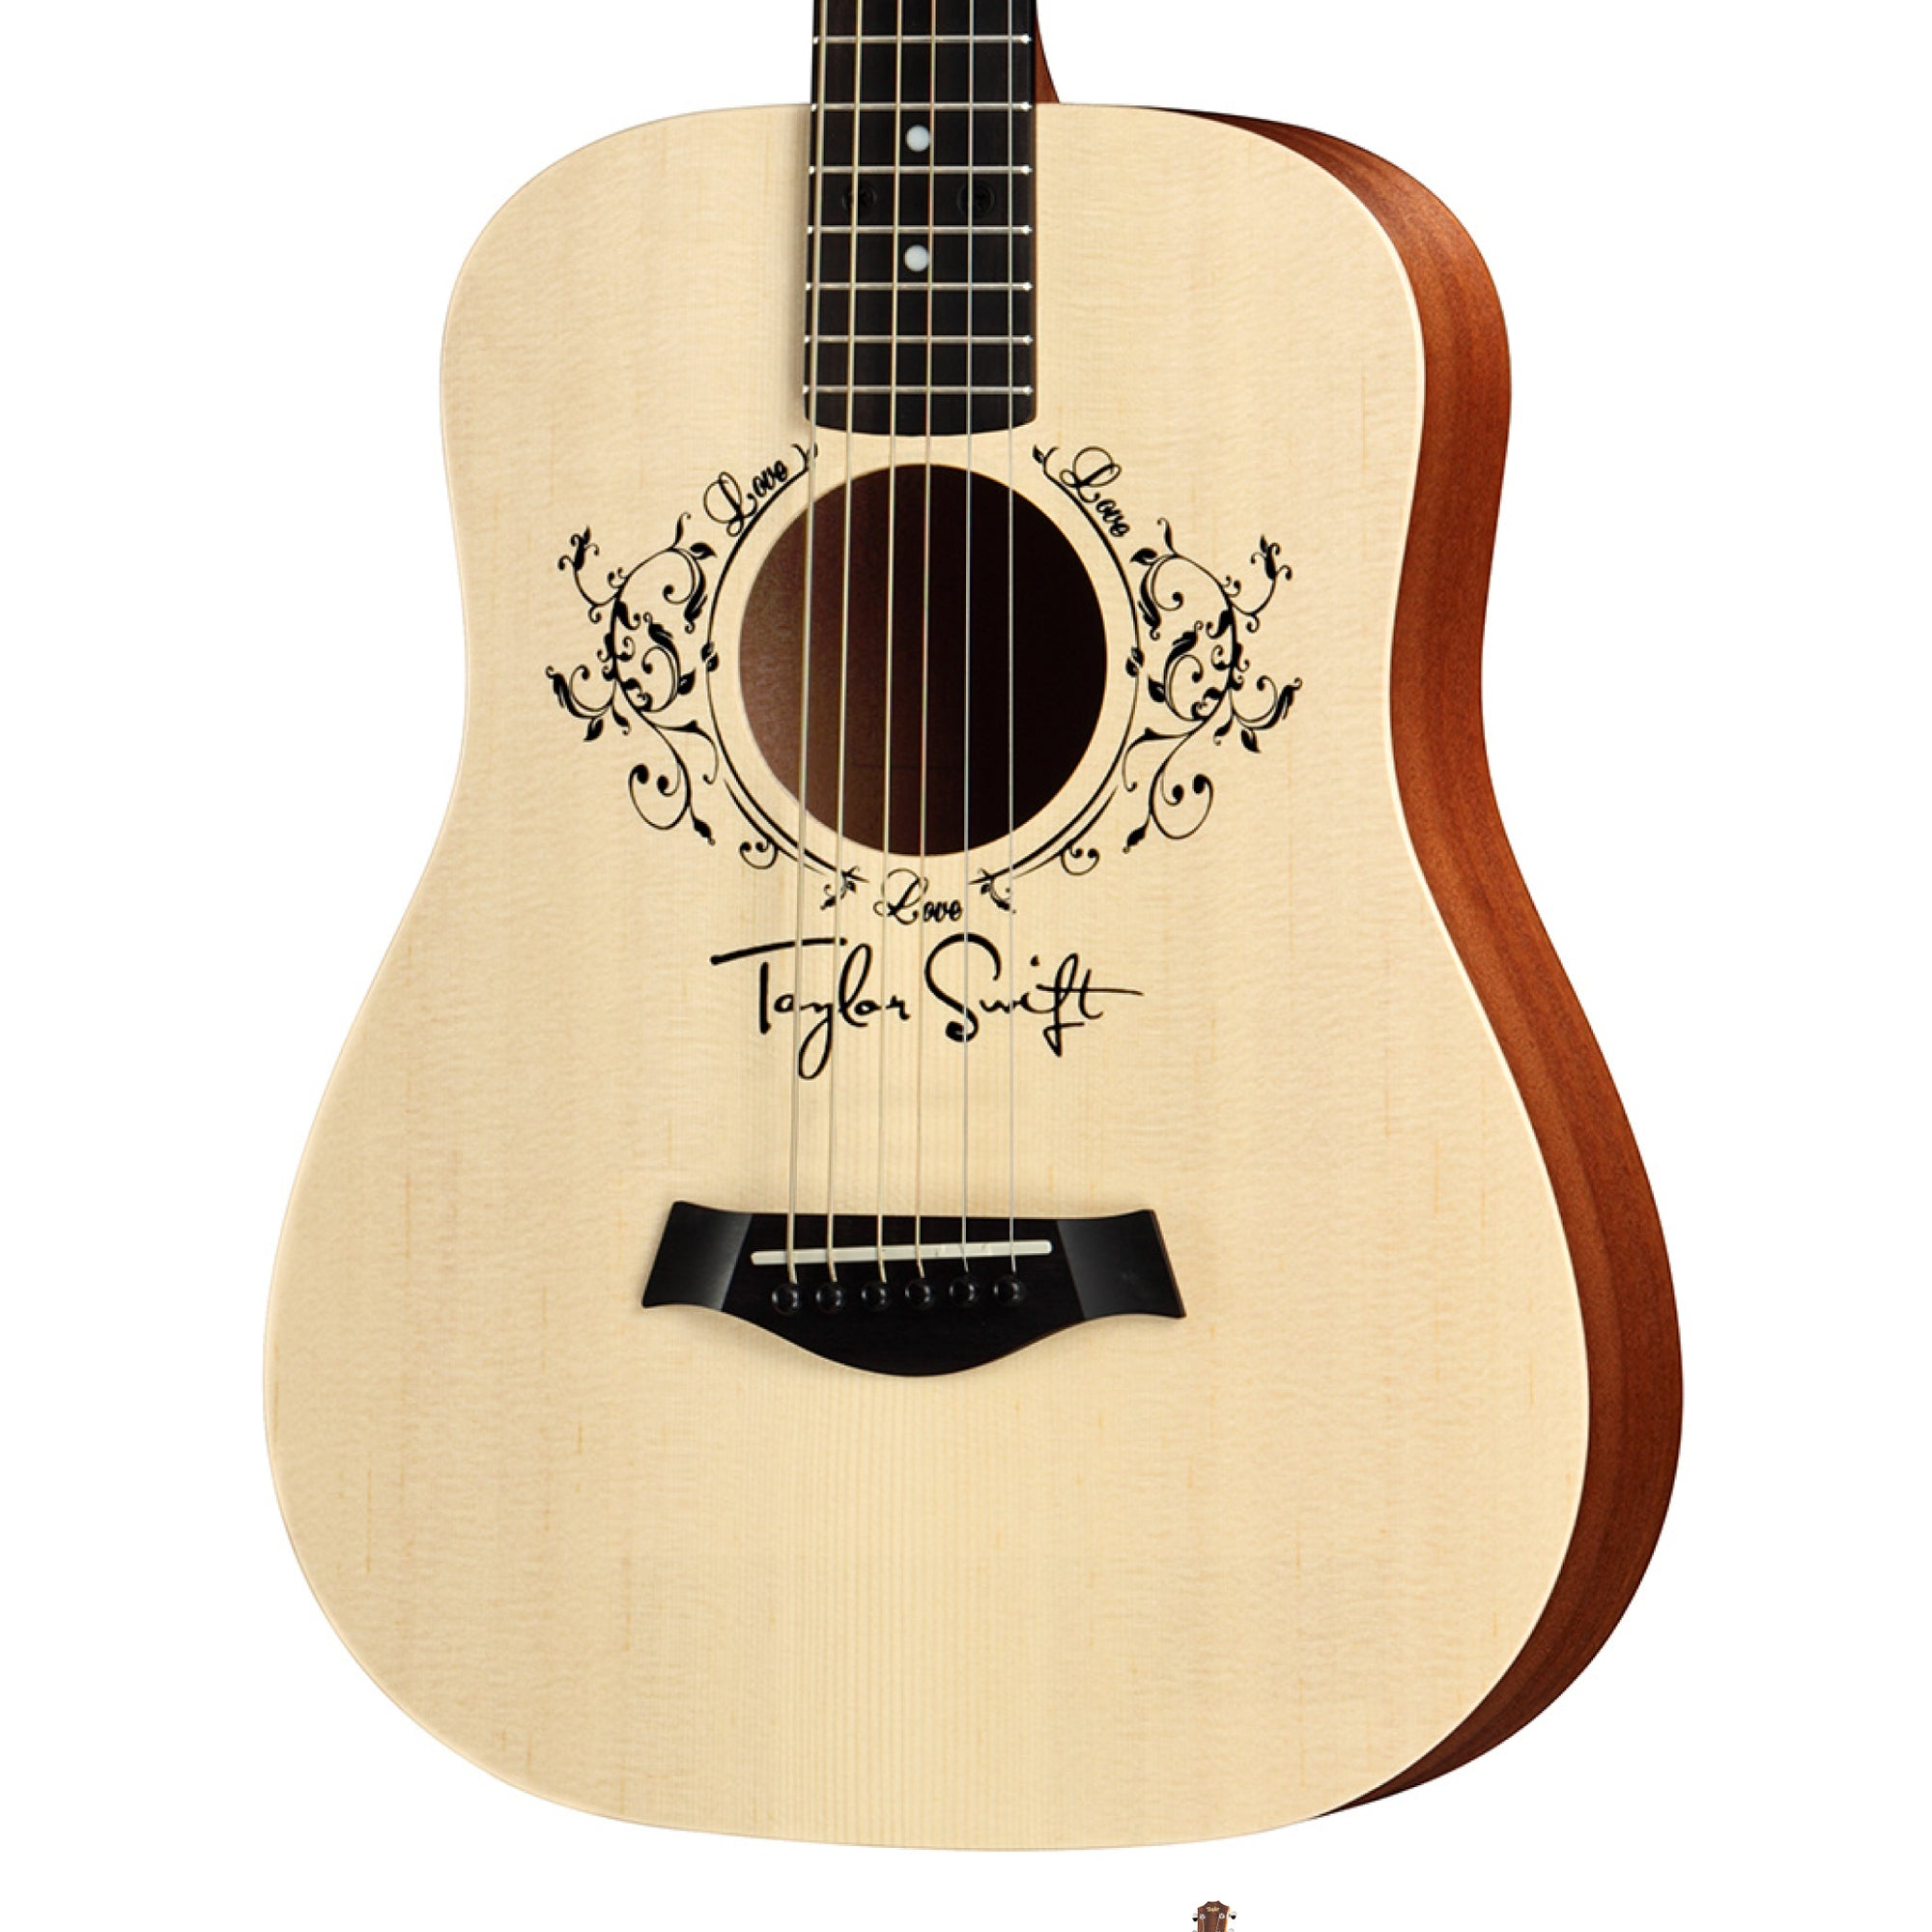 Taylor TSBT Baby - Taylor Swift